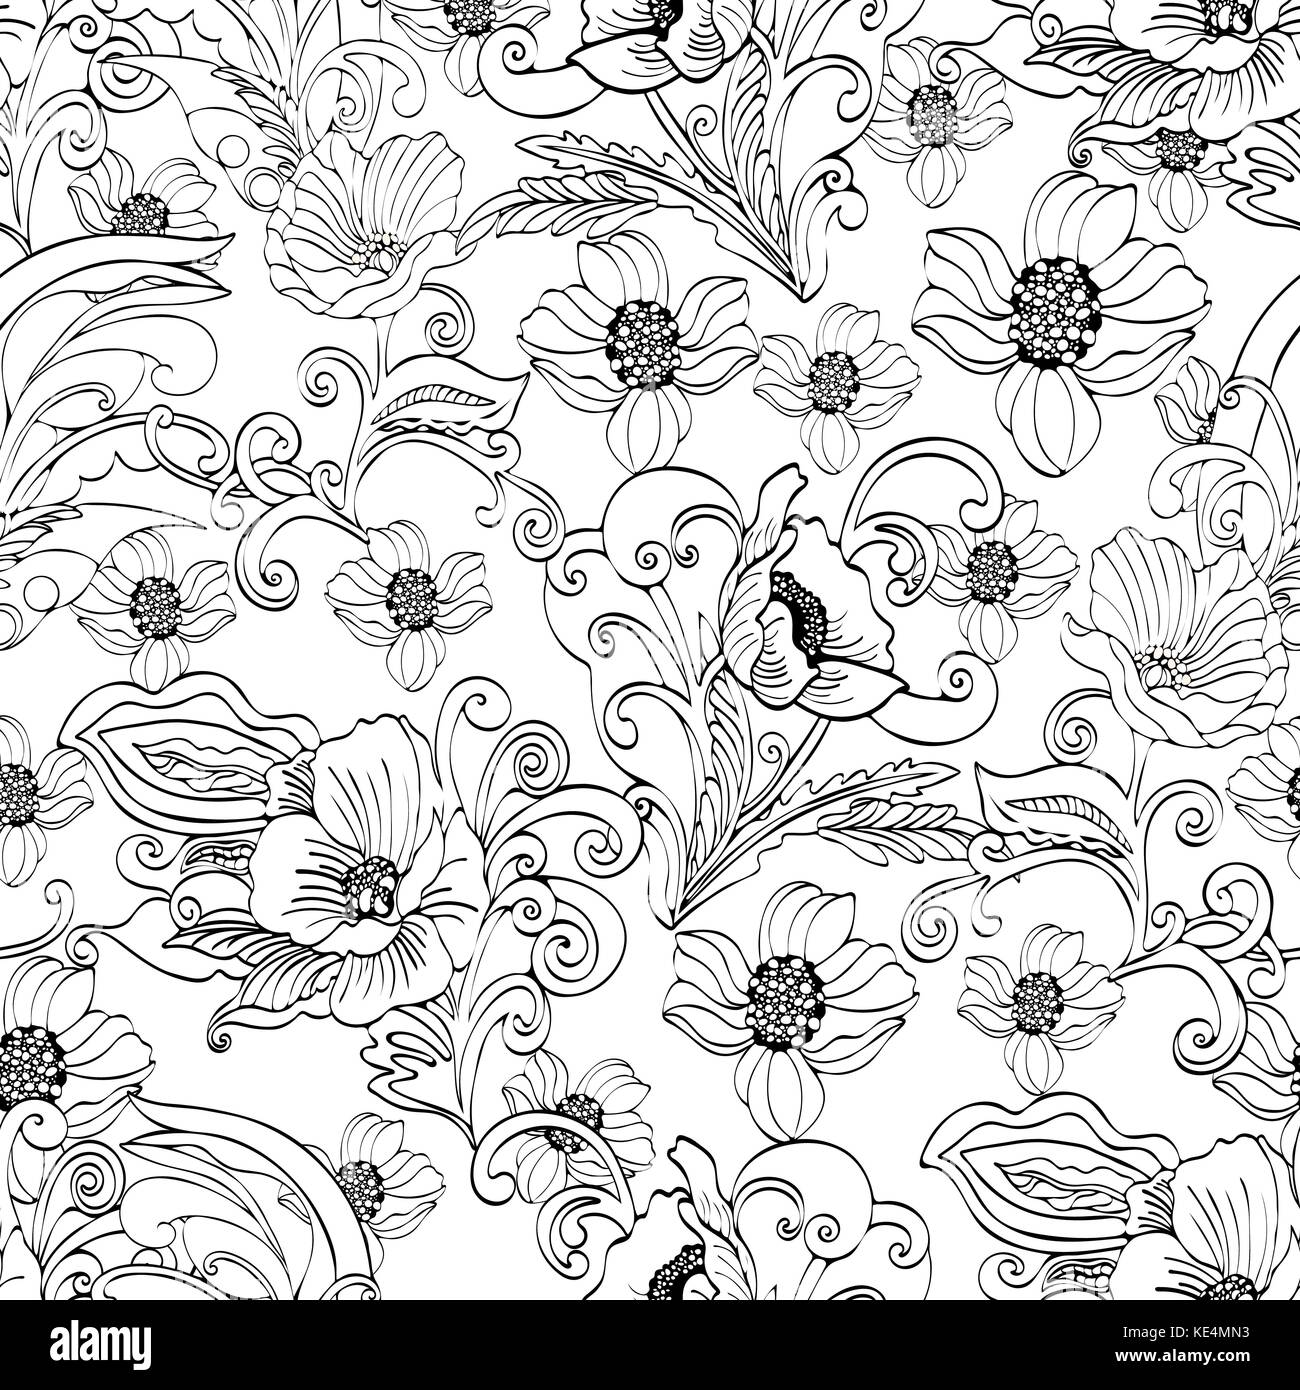 Abstract Flowers Seamless Pattern Vector Floral Black And